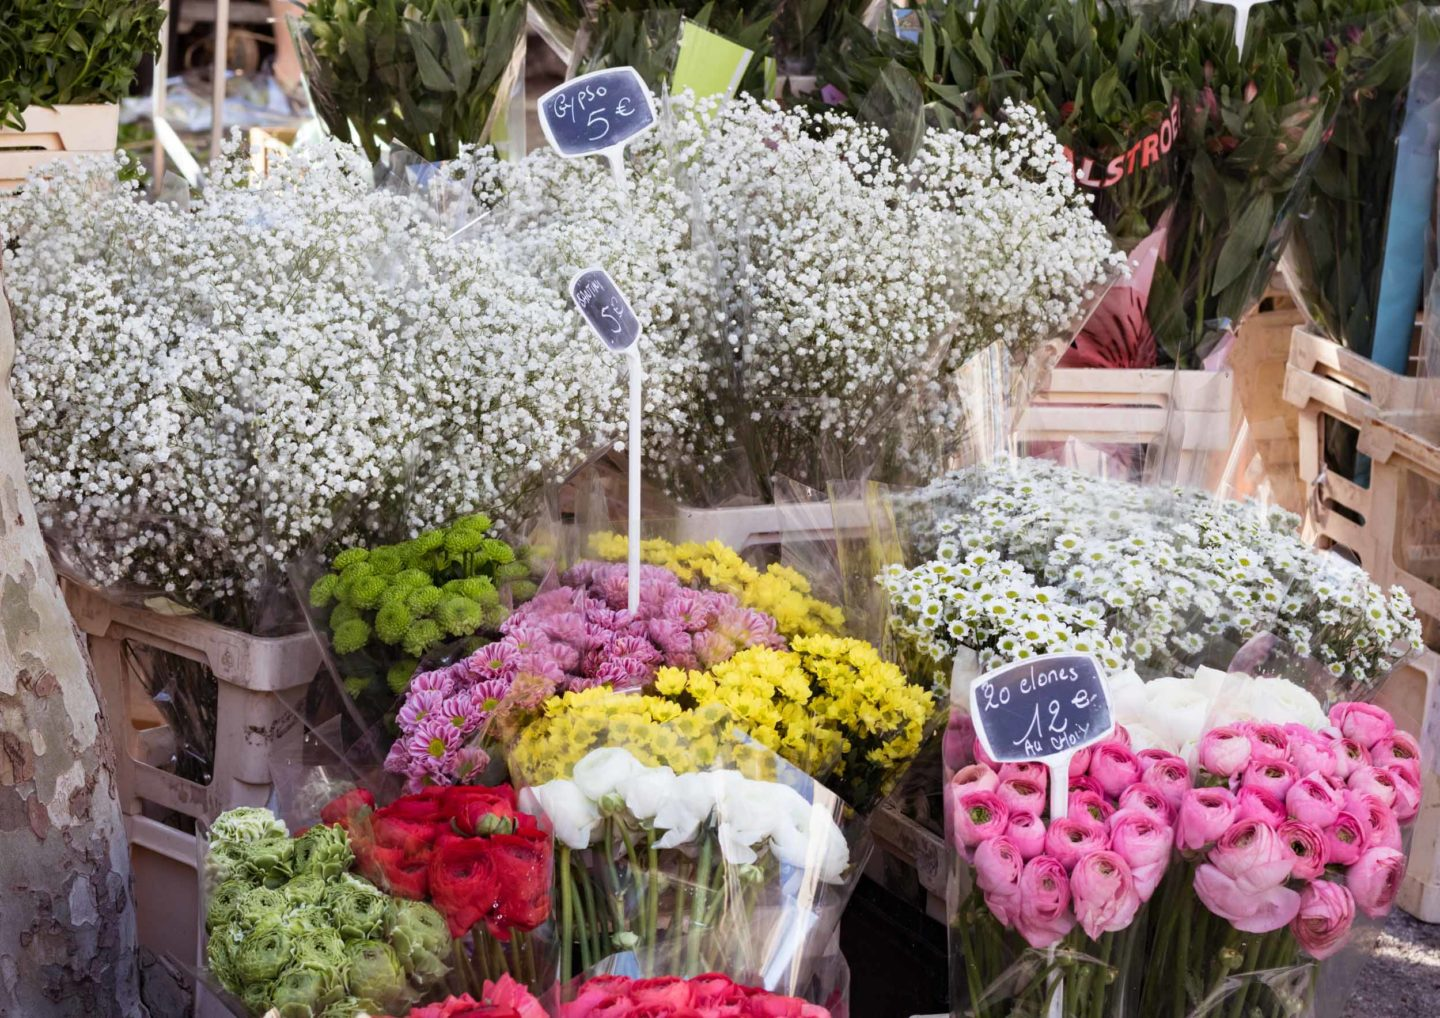 St.Tropez market news and views